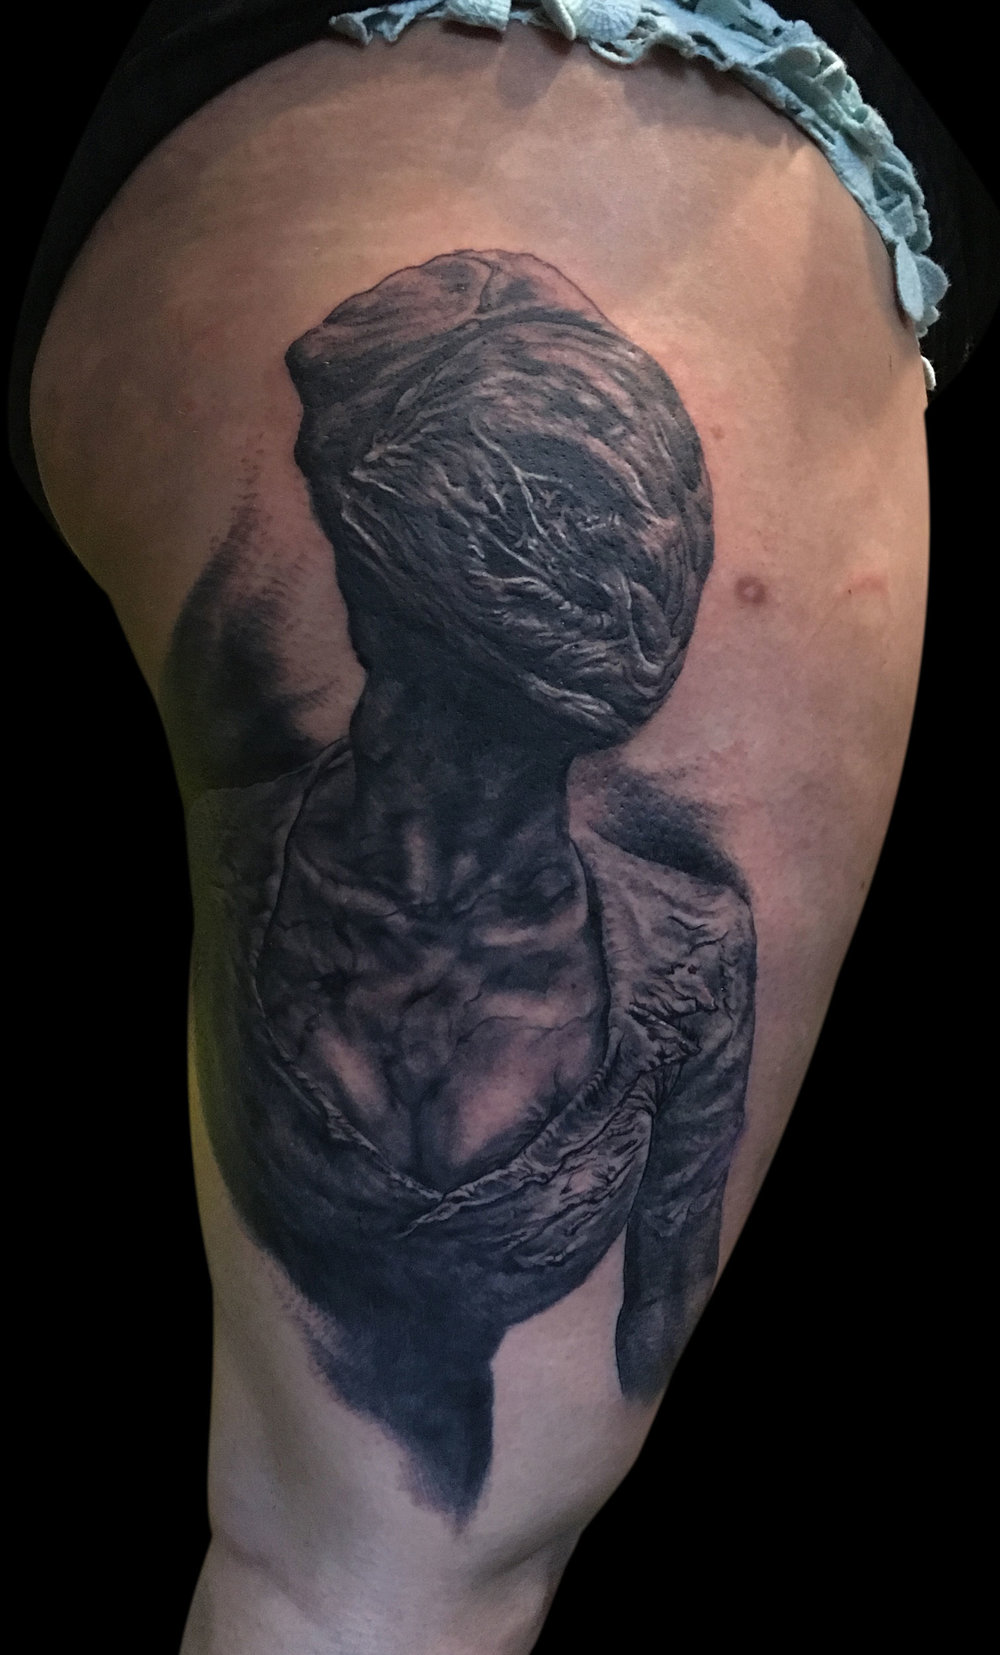 Black and Grey Silent Hill Nurse Horror Portrait Tattoo, (fresh) Le Mondial du Tatouage Convention, Paris, France